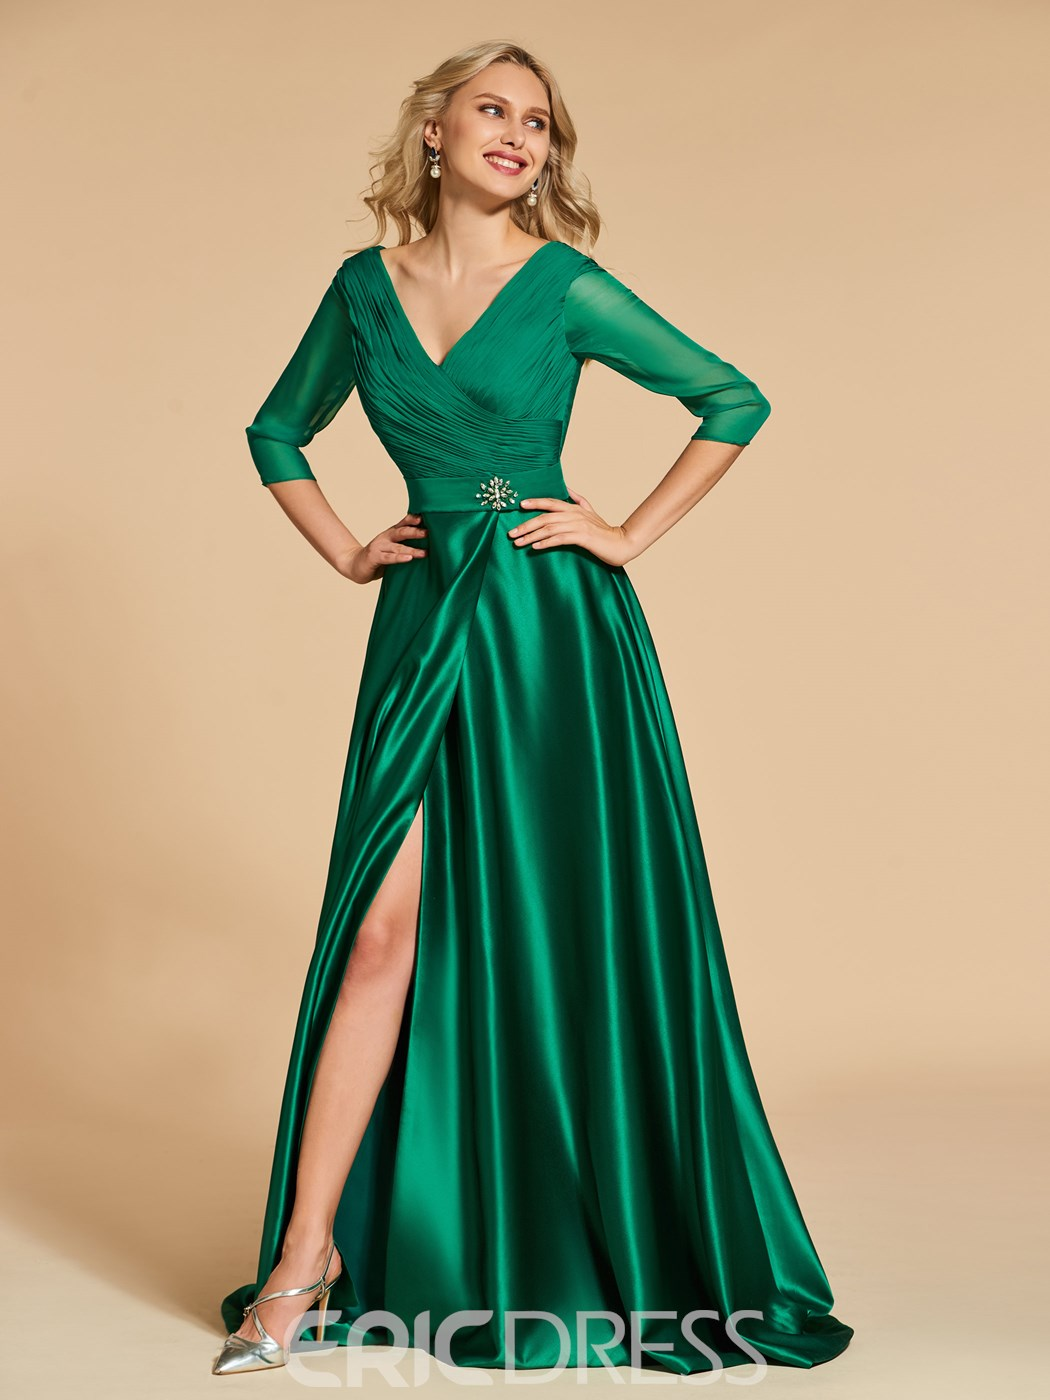 Ericdress Sexy A Line 3/4 Long Sleeve Deep V Neck Prom Dress